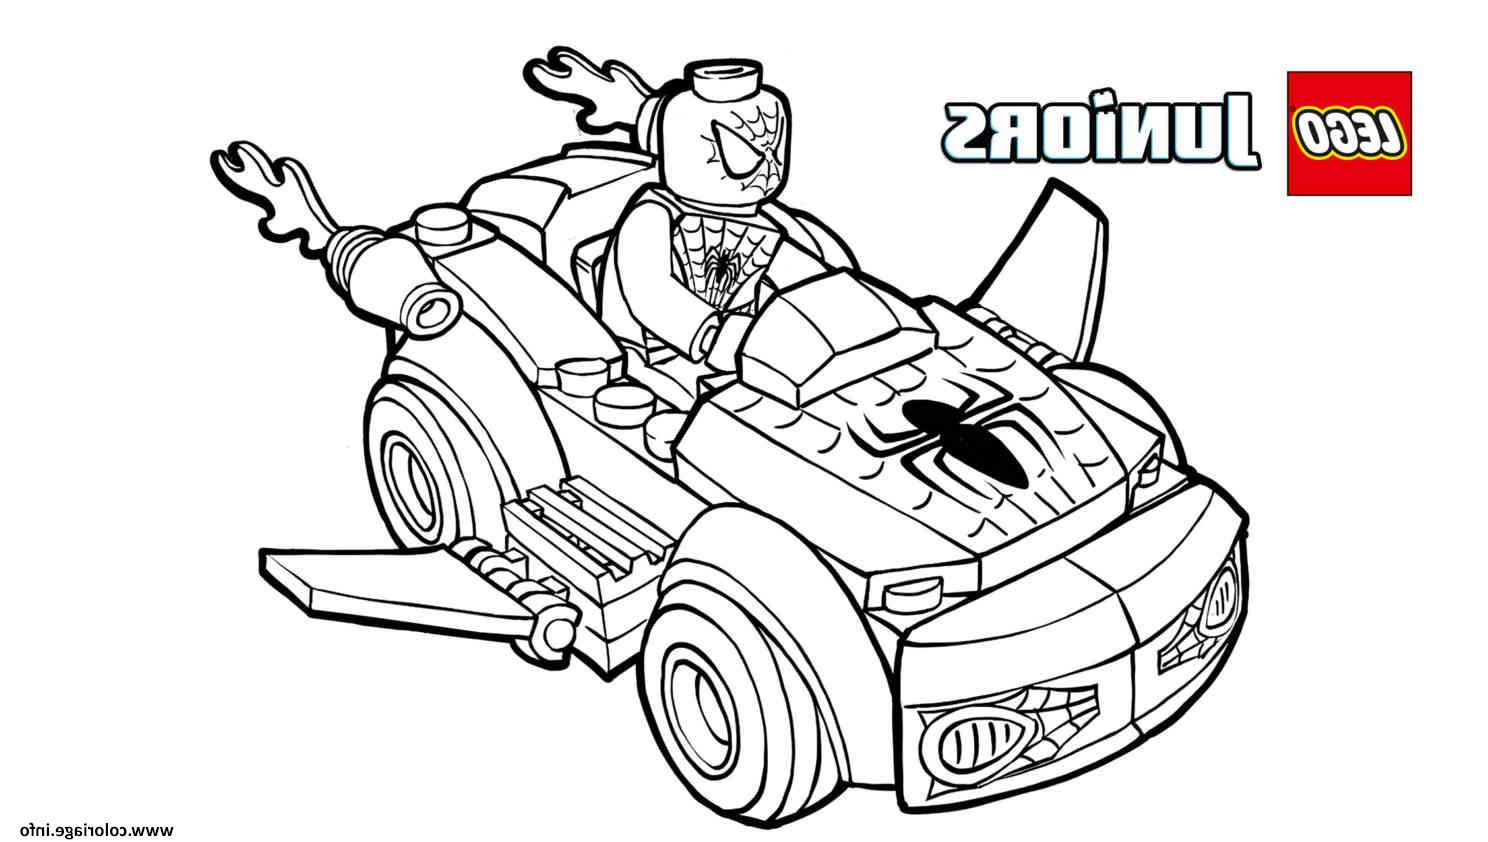 Mignonne Coloriage Lego Spiderman 15 sur Coloriage Books for Coloriage Lego Spiderman